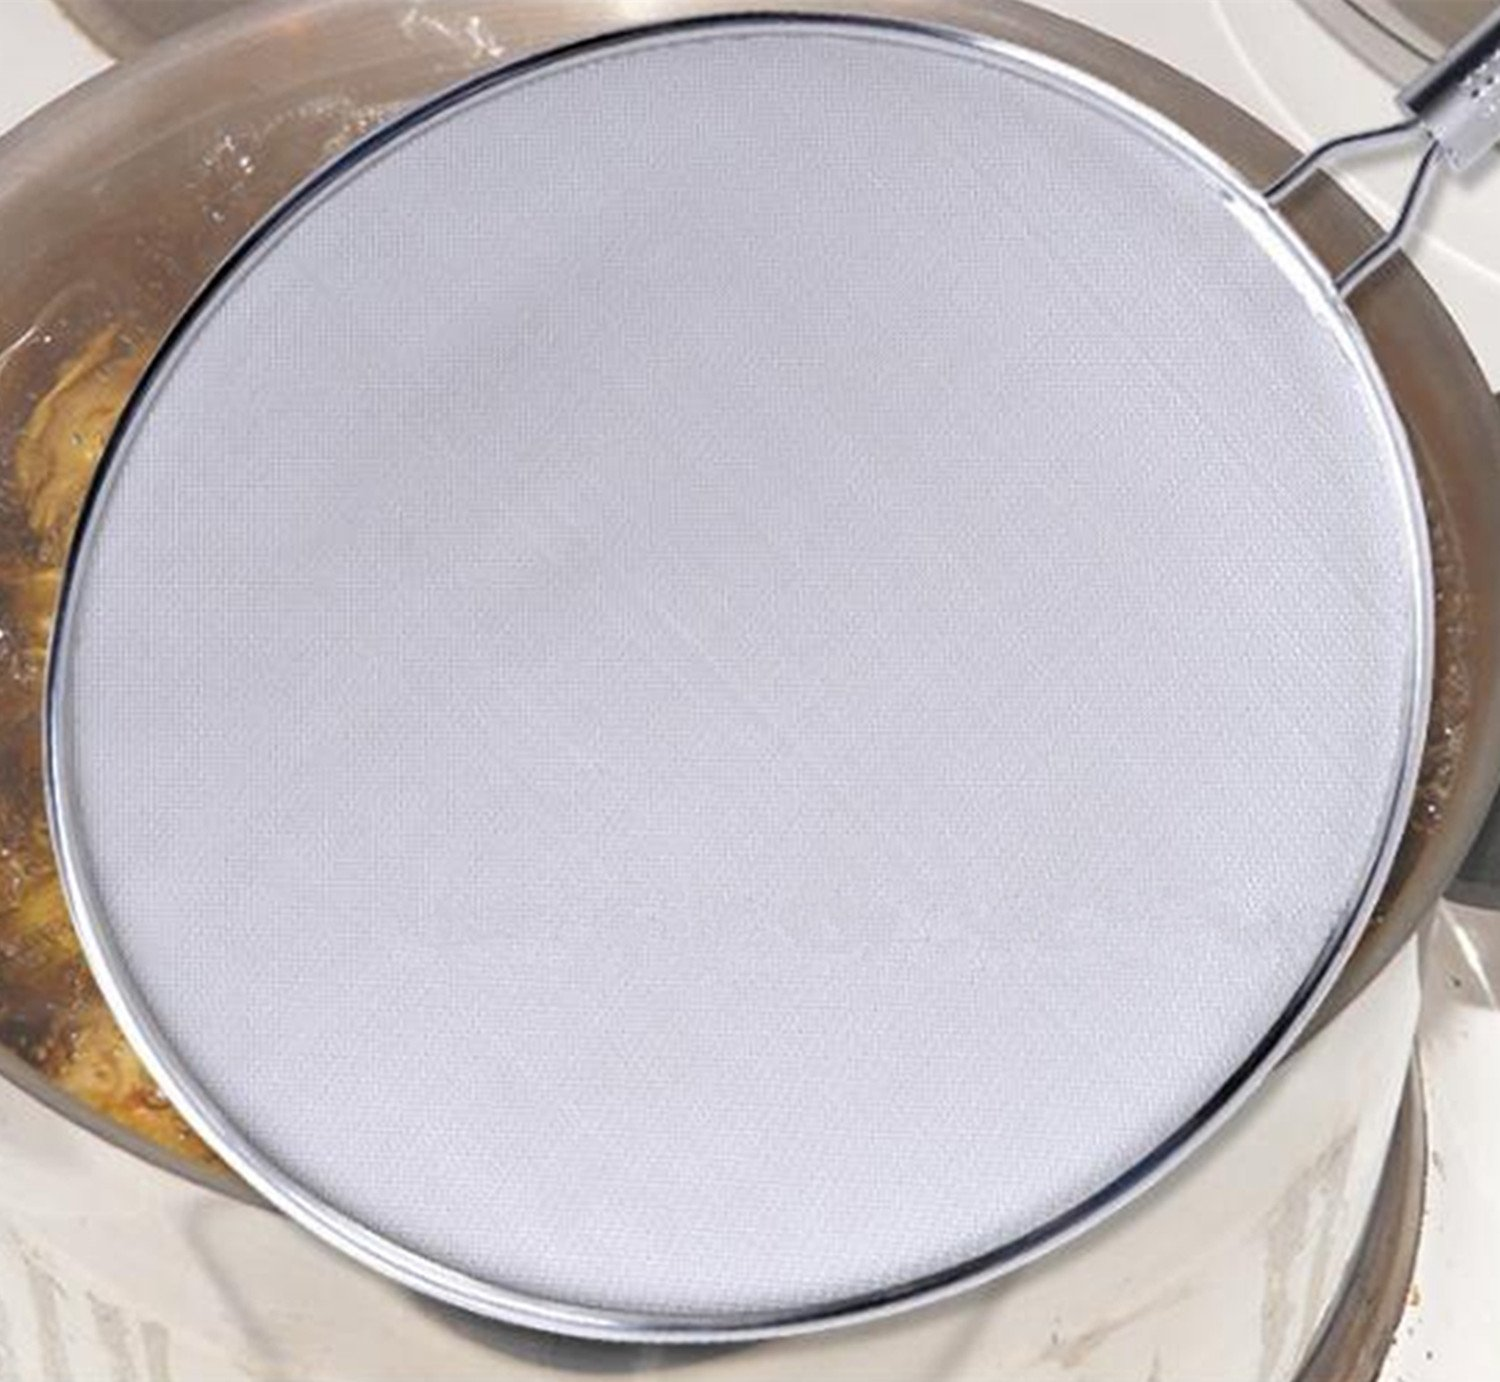 MUKE Splatter Screen for Frying Pan, Premium 13-inch Food Grade Stainless Steel Grease Oil Guard for Safe Cooking, Keeps Stovetop Clean